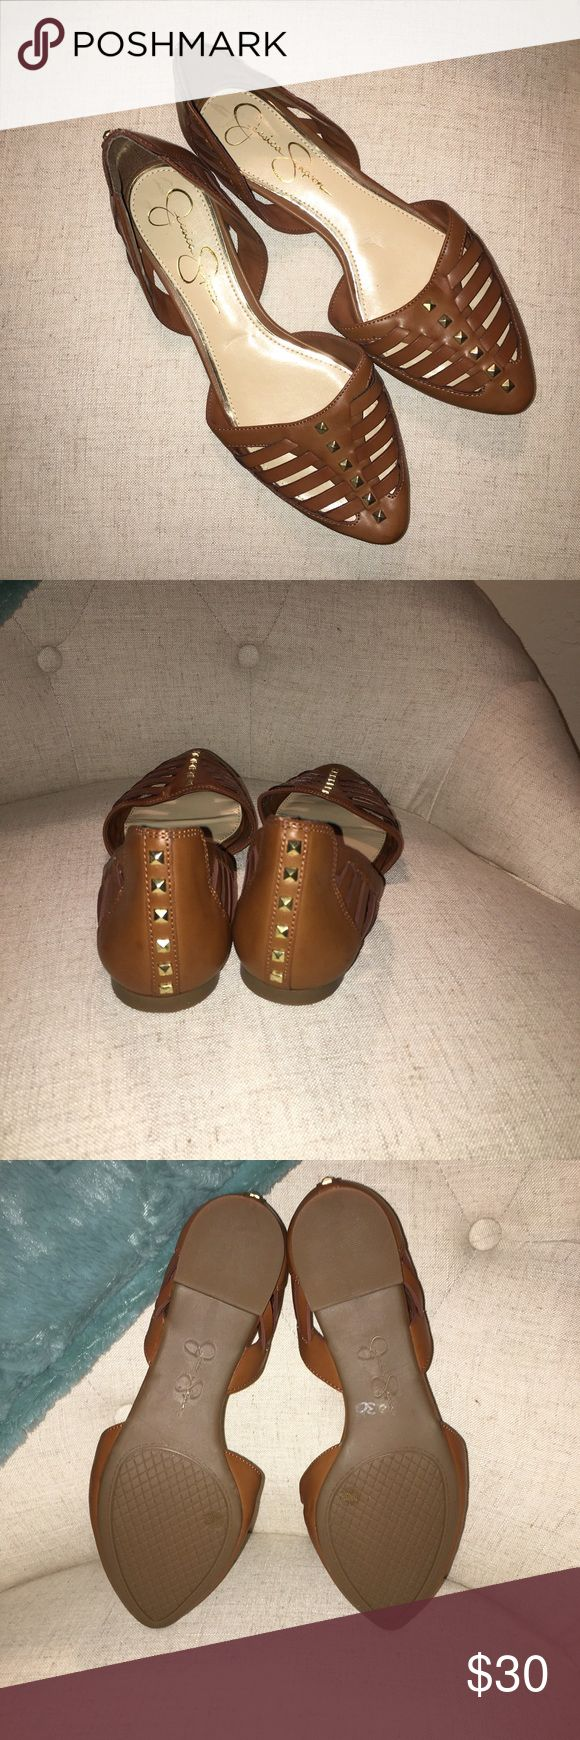 Jessica Simpson flats Never worn size 7.5 studded Jessica Simpson flats Jessica Simpson Shoes Flats & Loafers